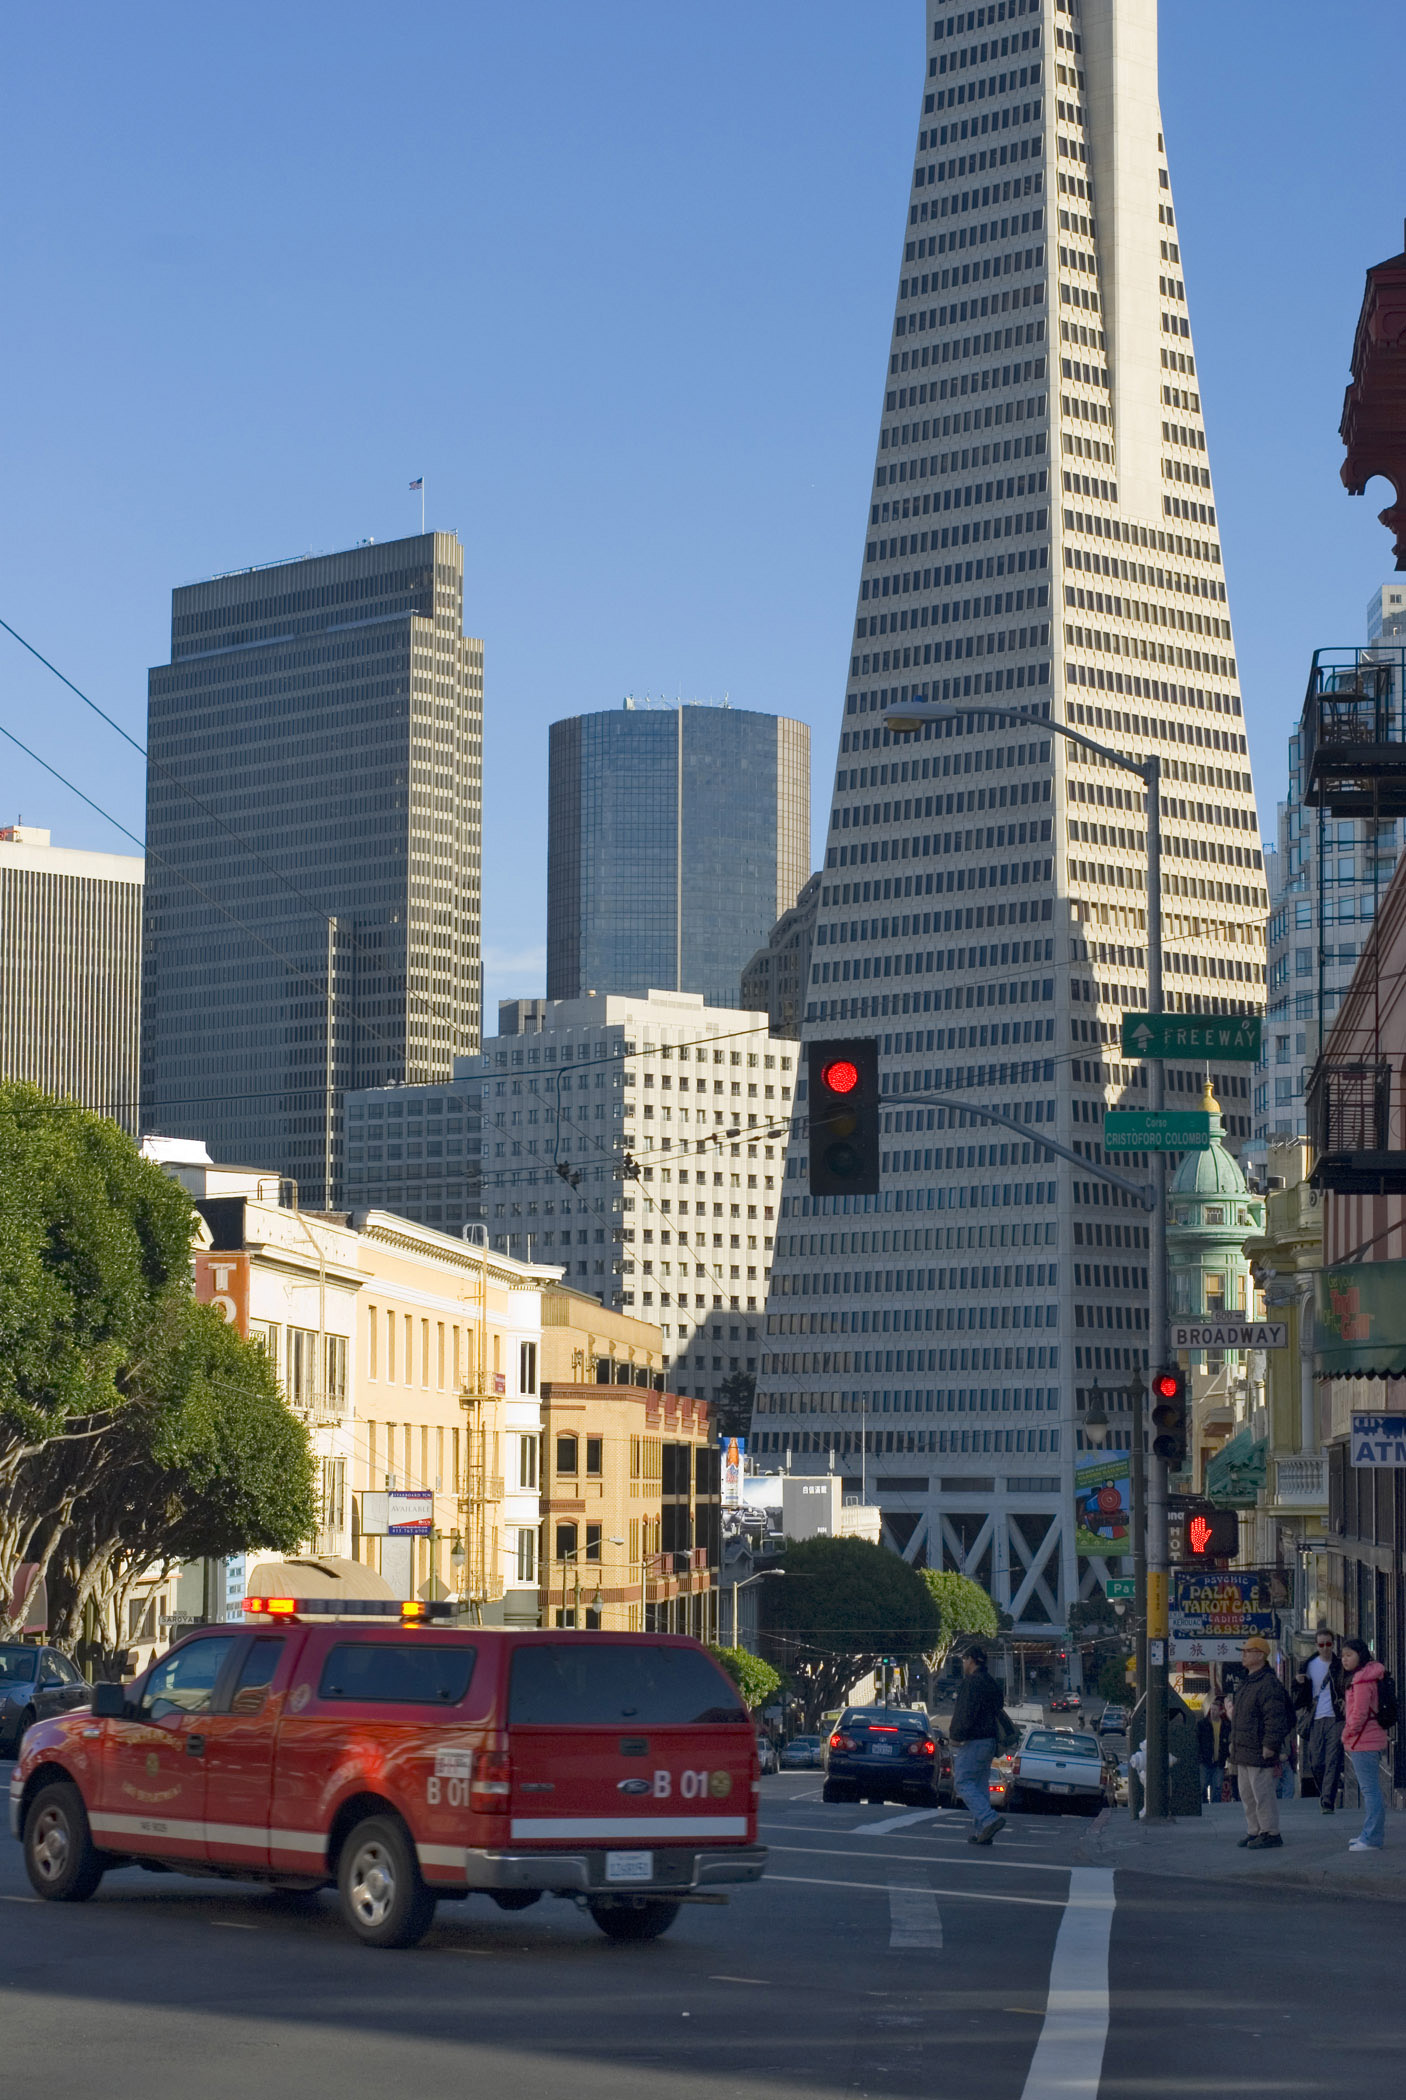 Architectural City Buildings Along the Street at Columbus Avenue San Francisco. Emphasizing Transamerica Pyramid.